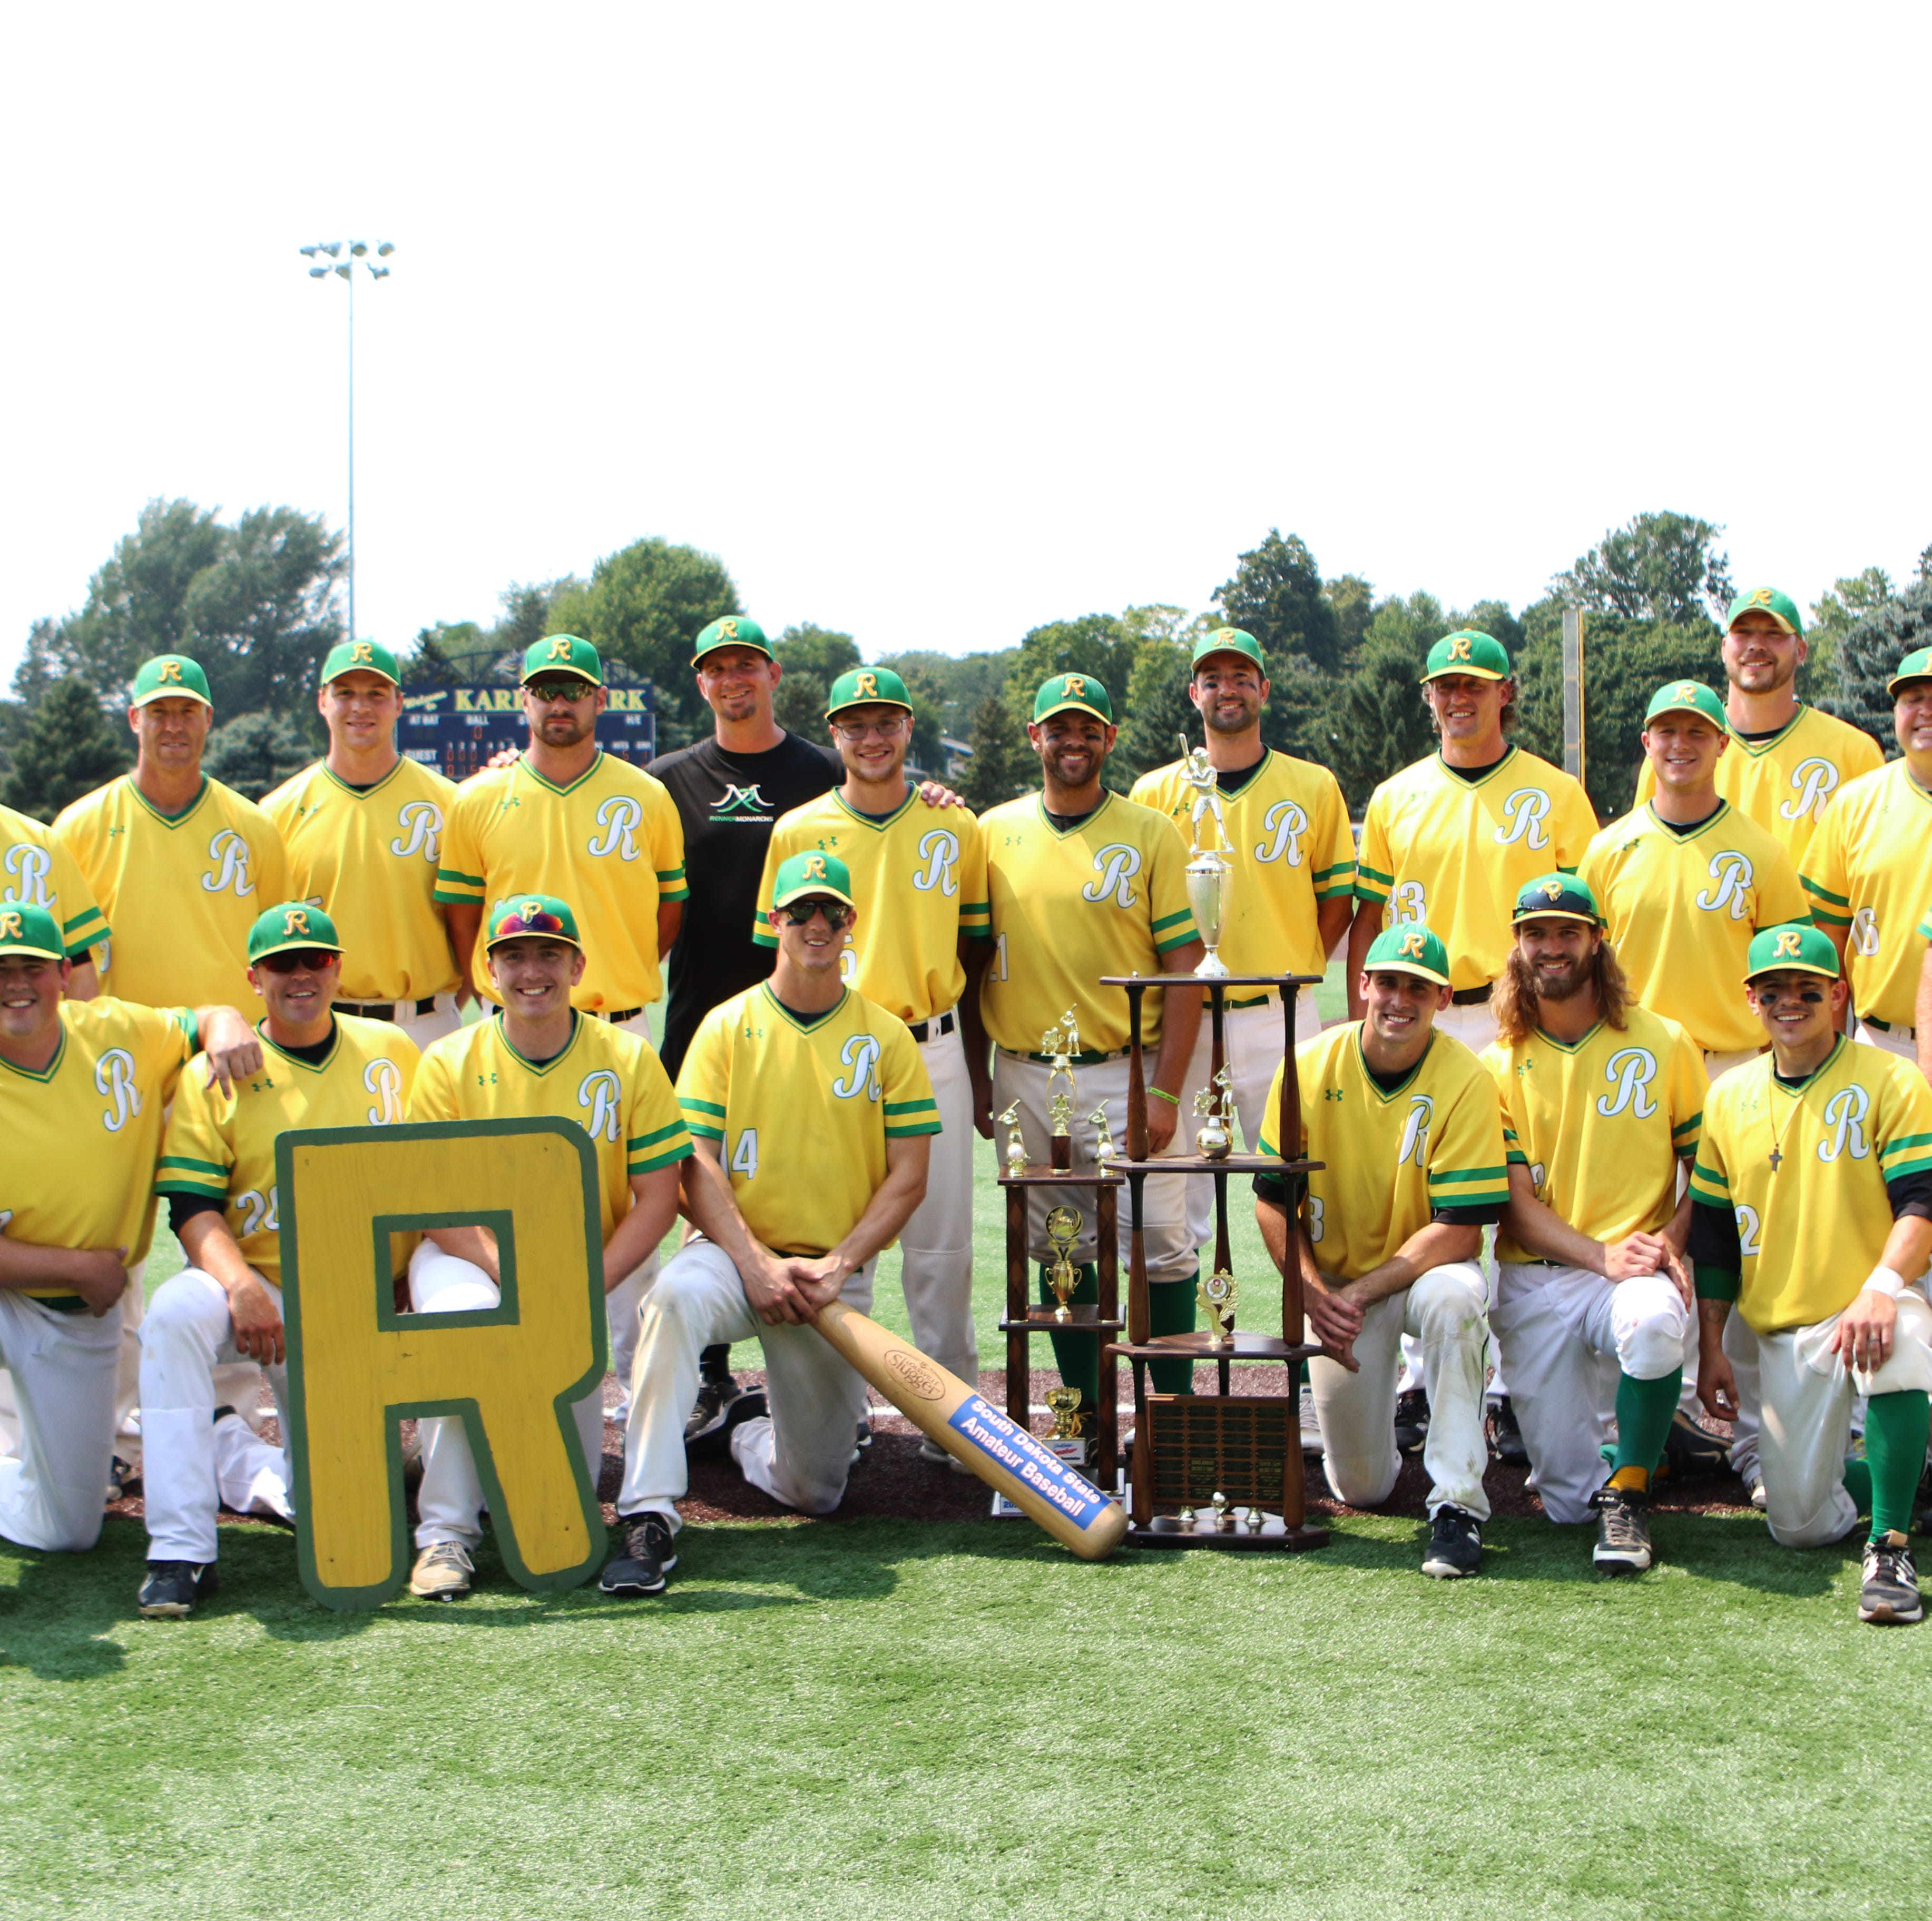 Renner Monarchs continue reign, clinch sixth straight Class A amateur baseball championship